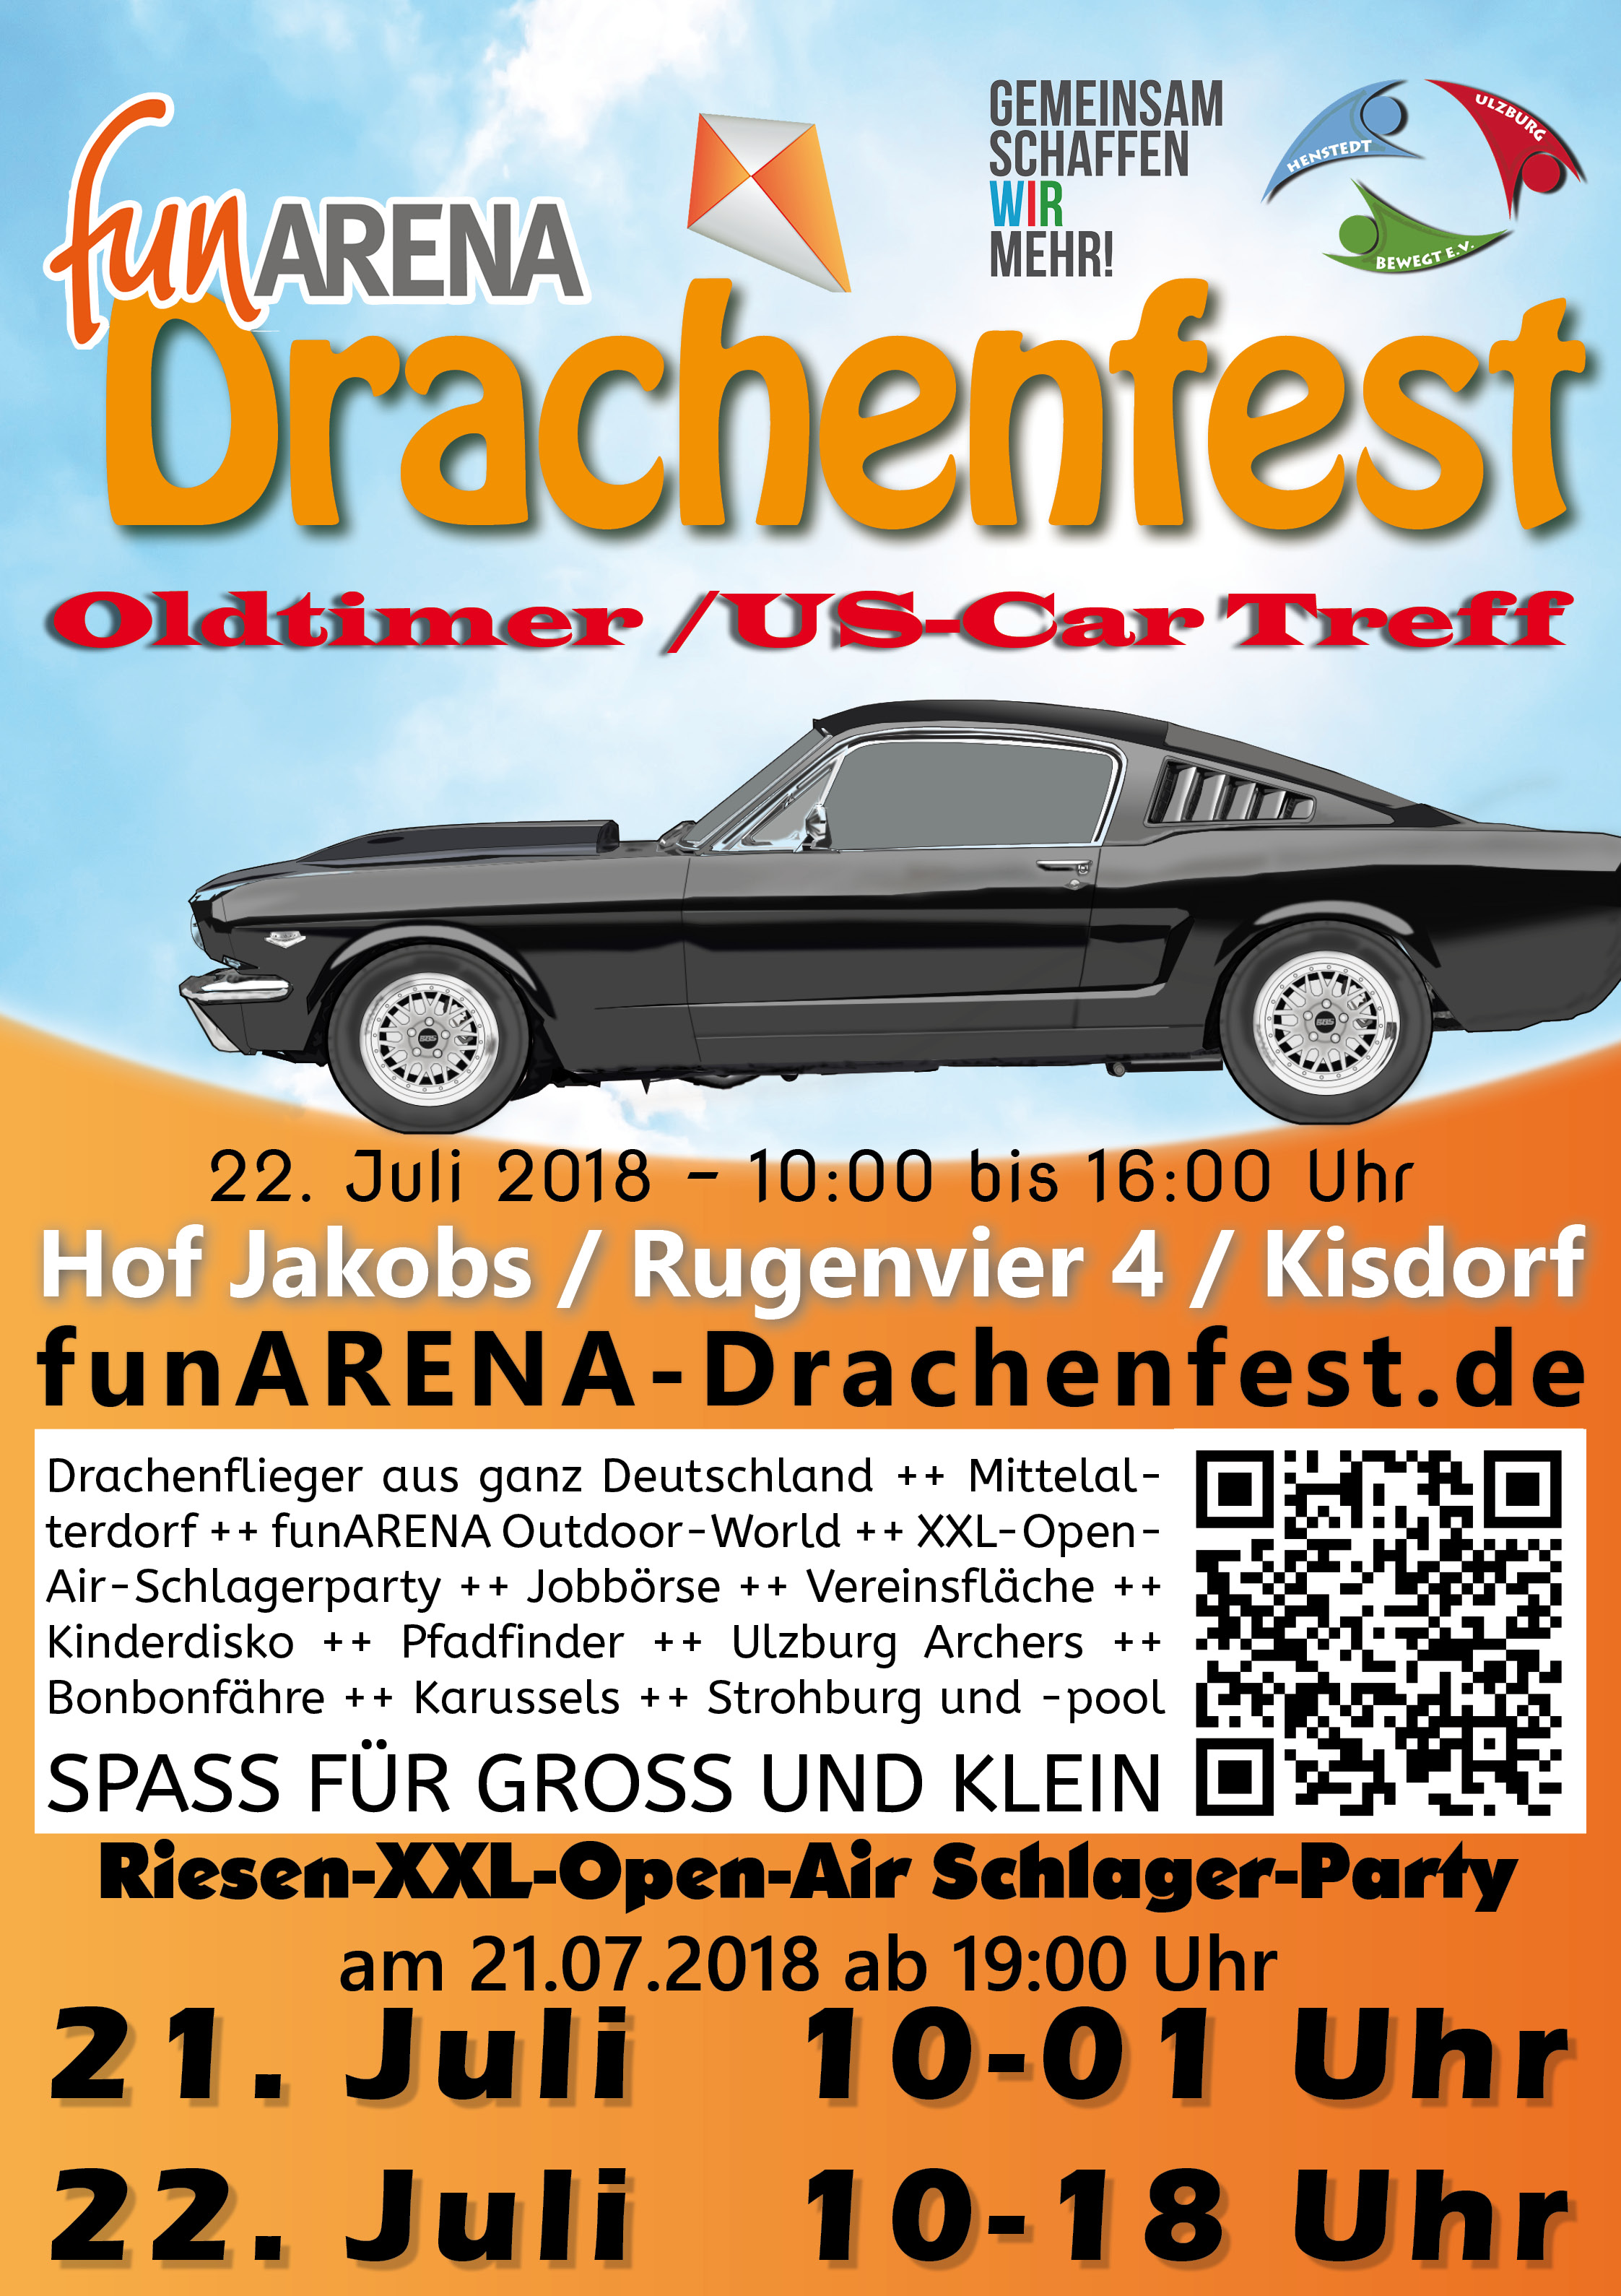 5 funarena drachenfest mit open air schlagerparty jobb rse und car treff henstedt ulzburg. Black Bedroom Furniture Sets. Home Design Ideas